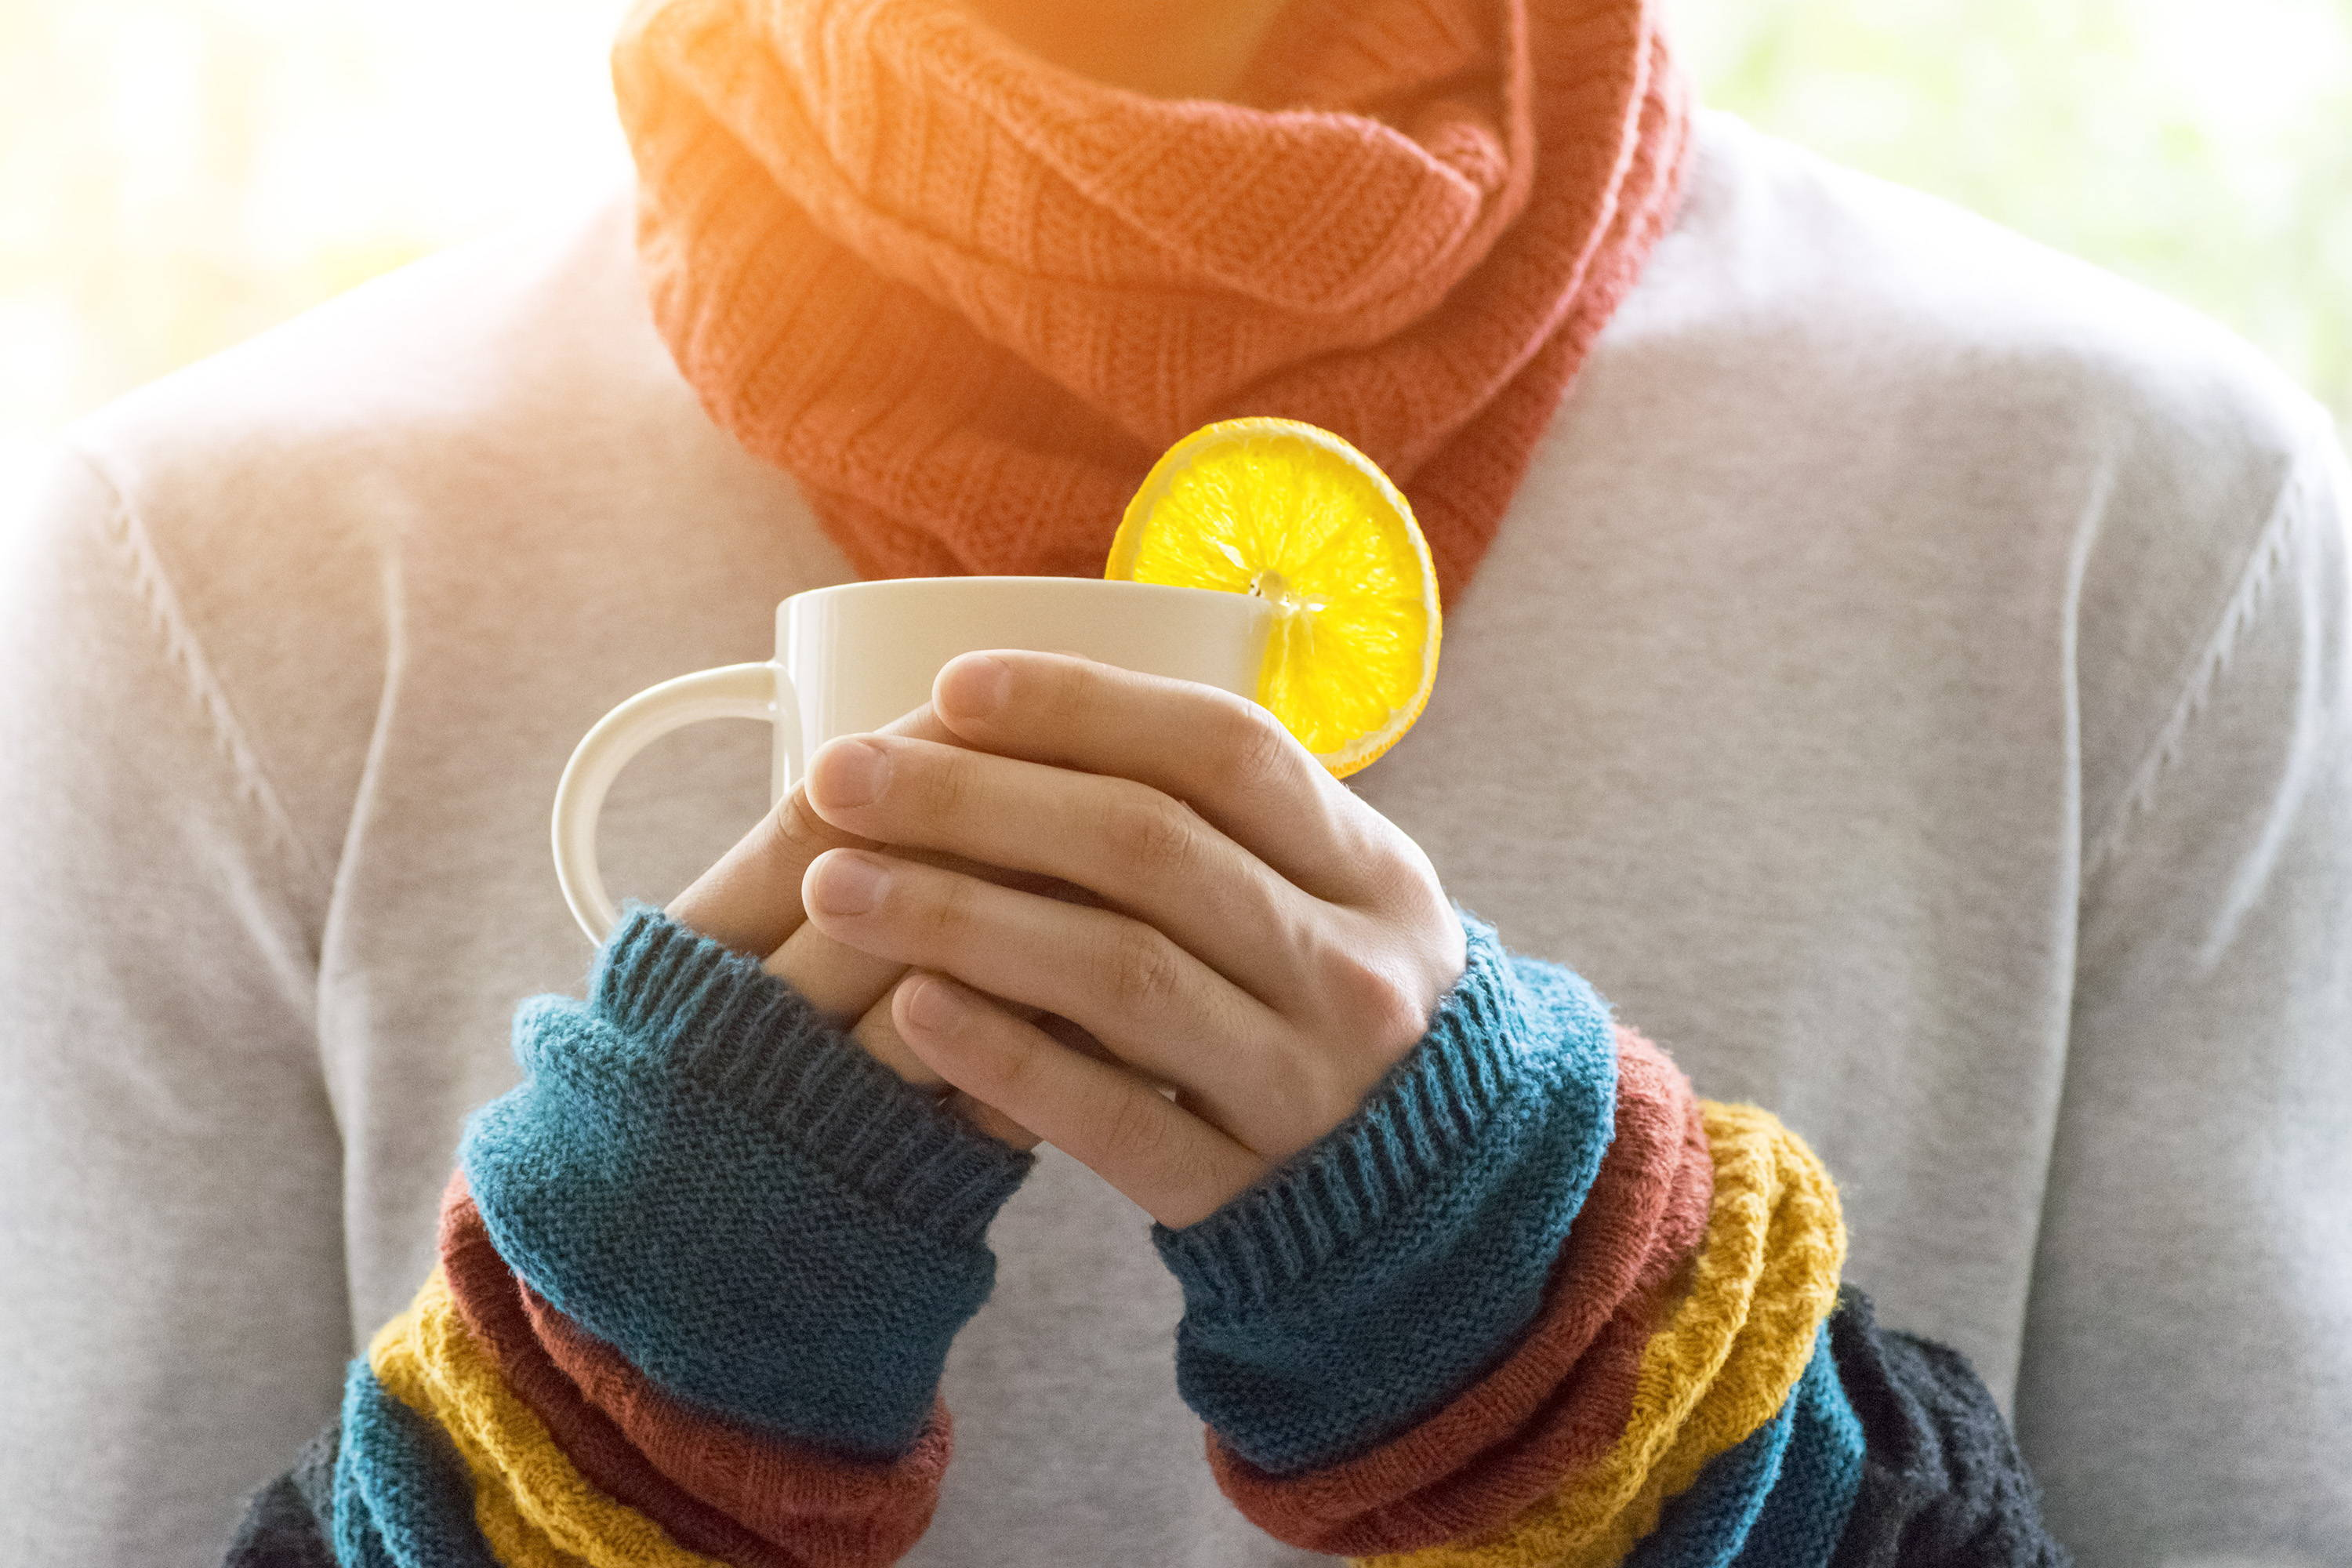 Boosting immunity with foods and homemade herbal teas